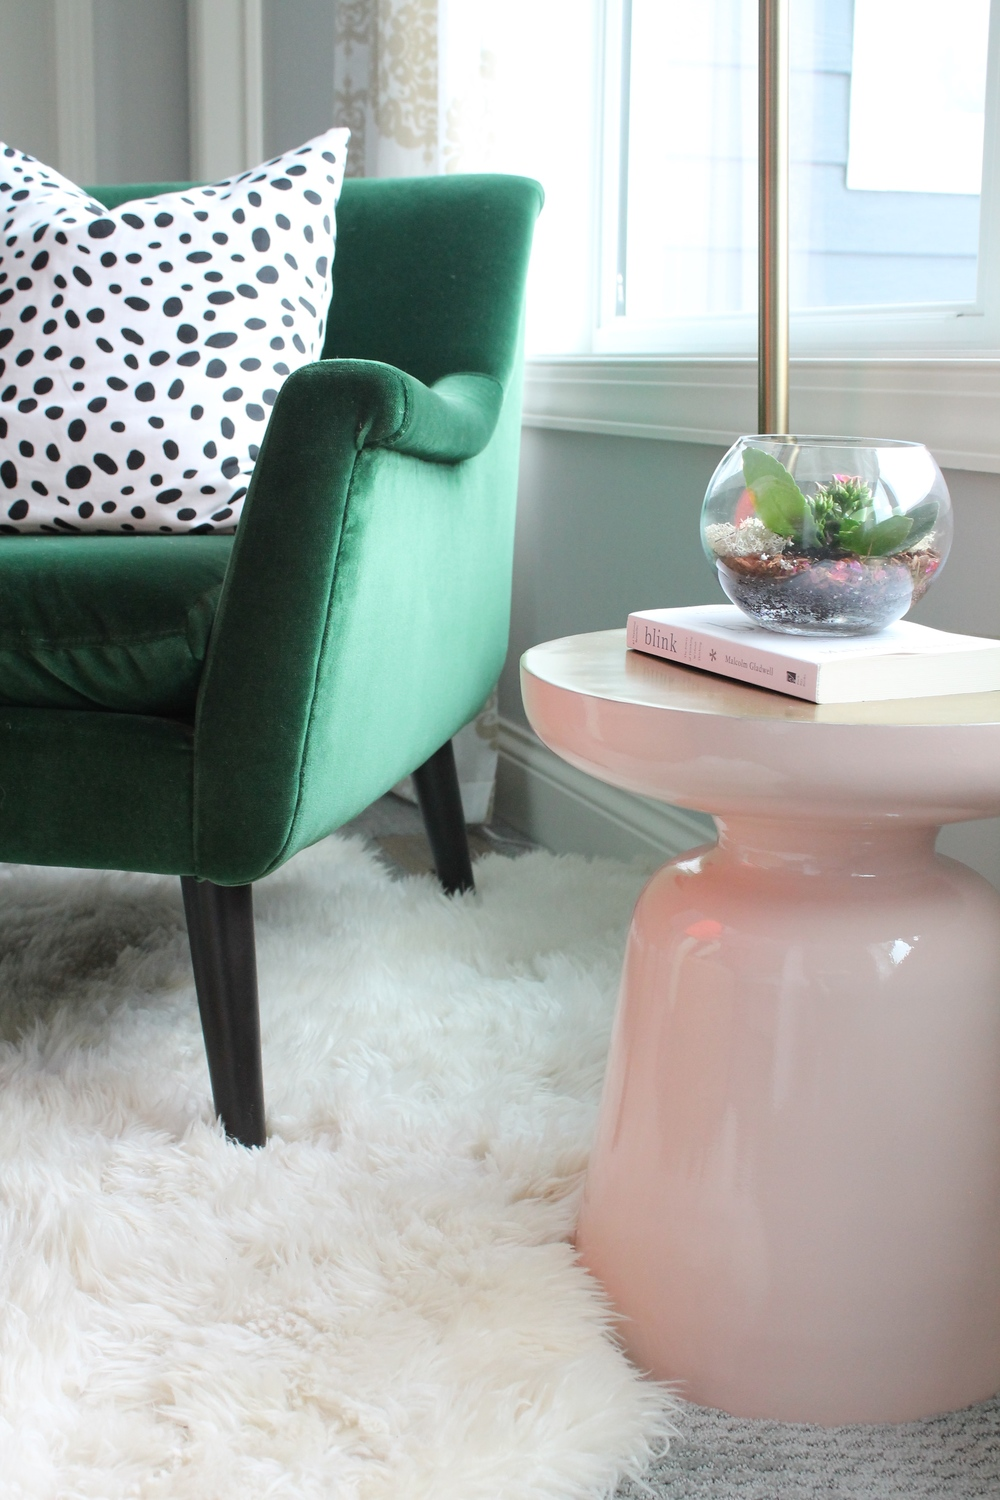 This pink and gold martini table from West Elm makes the perfect perch for a book or drink in this lovely master bedroom reading nook.